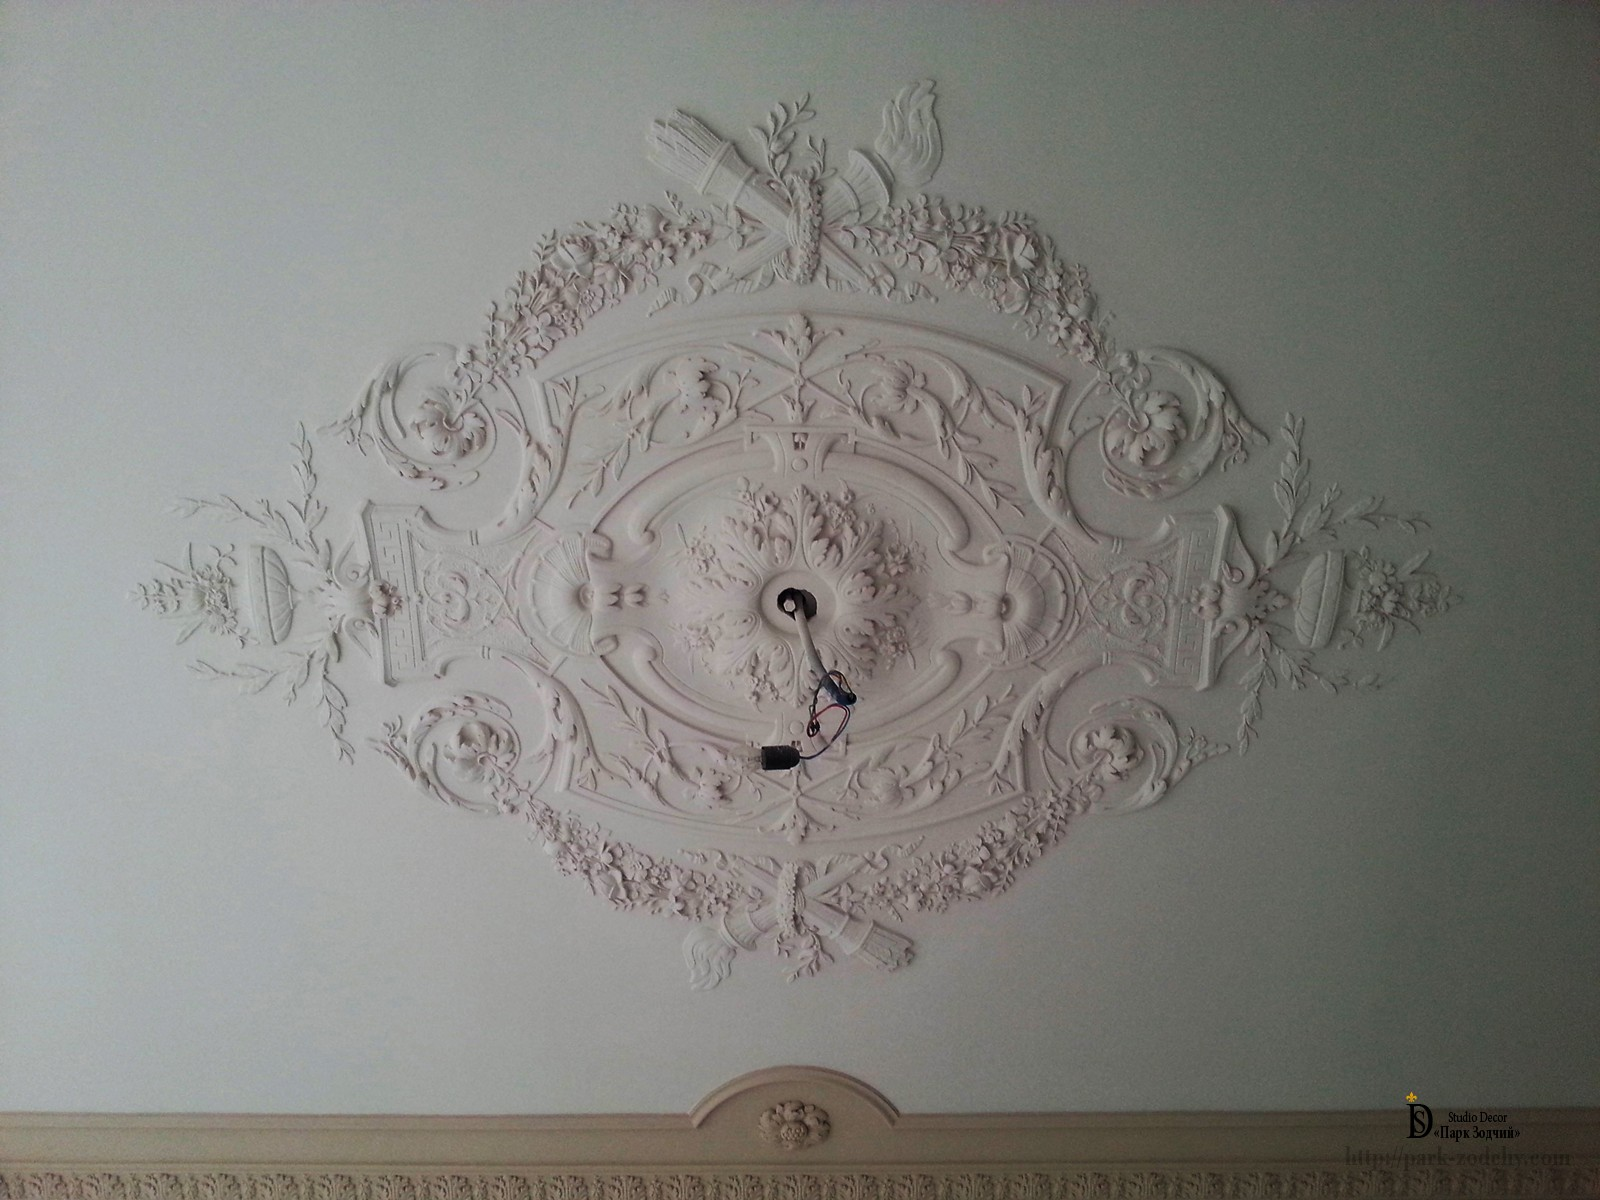 the modelled decor from plaster ceiling